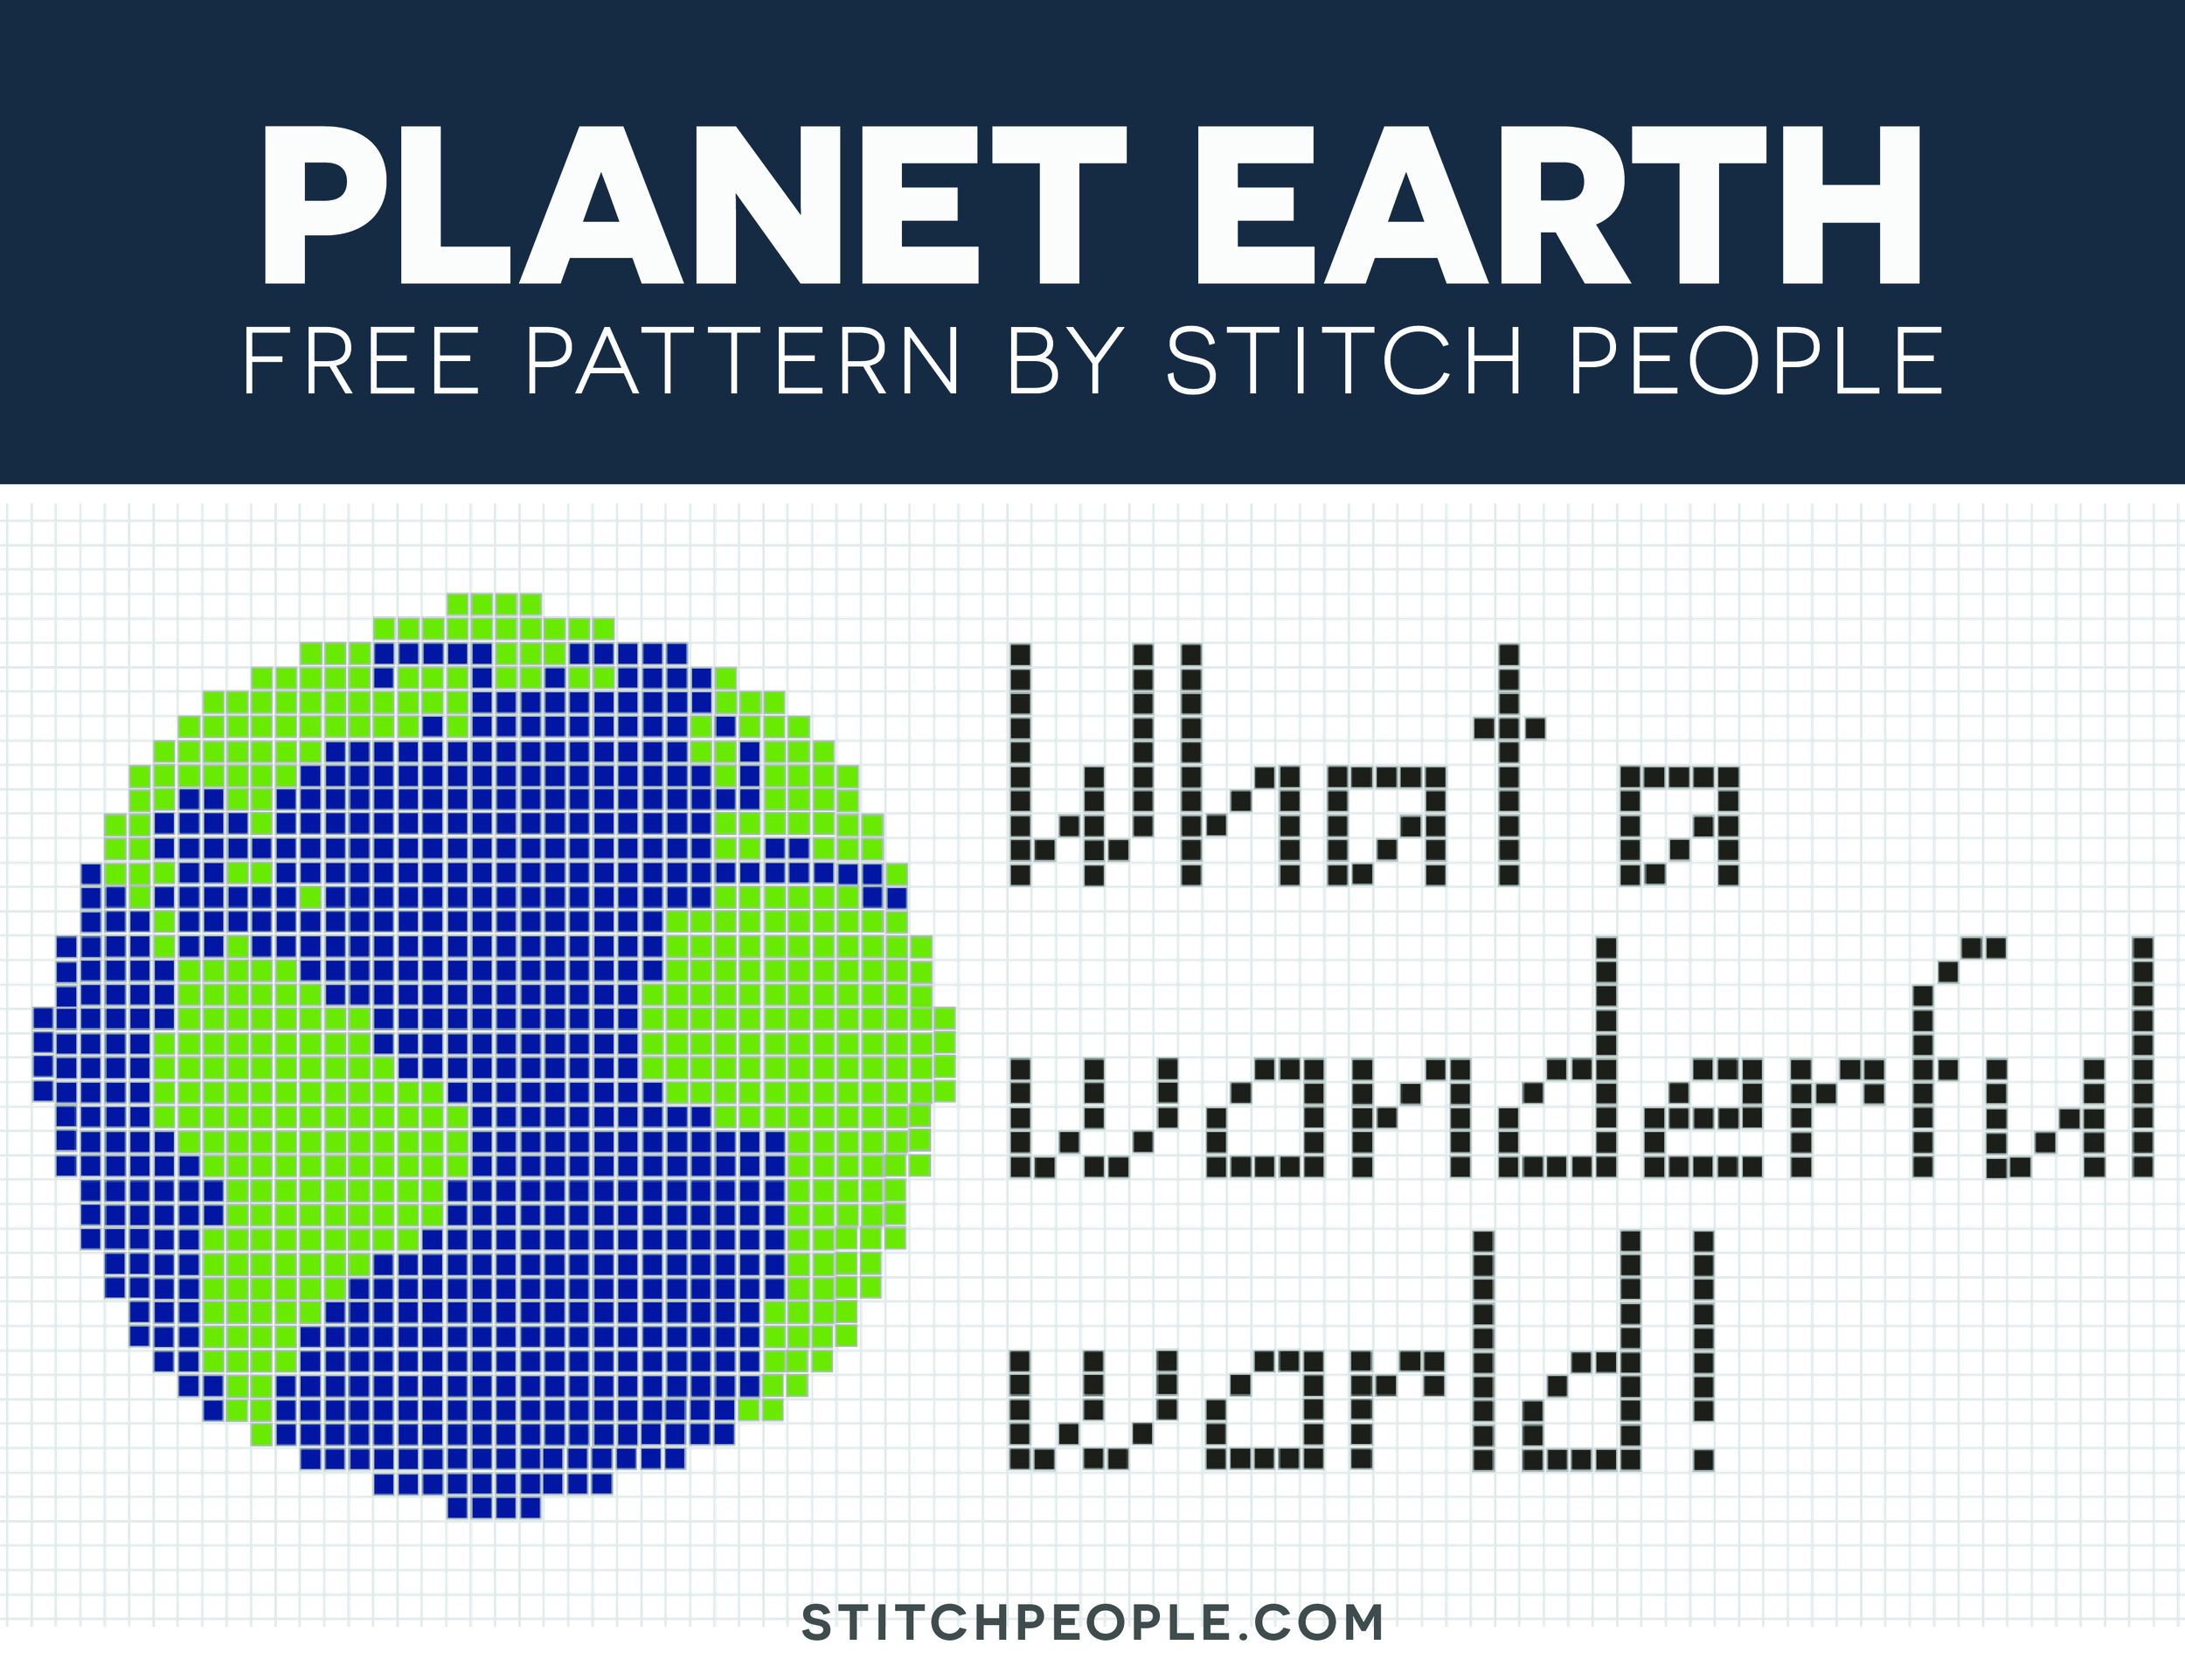 PlanetEarthStitchPeople-01